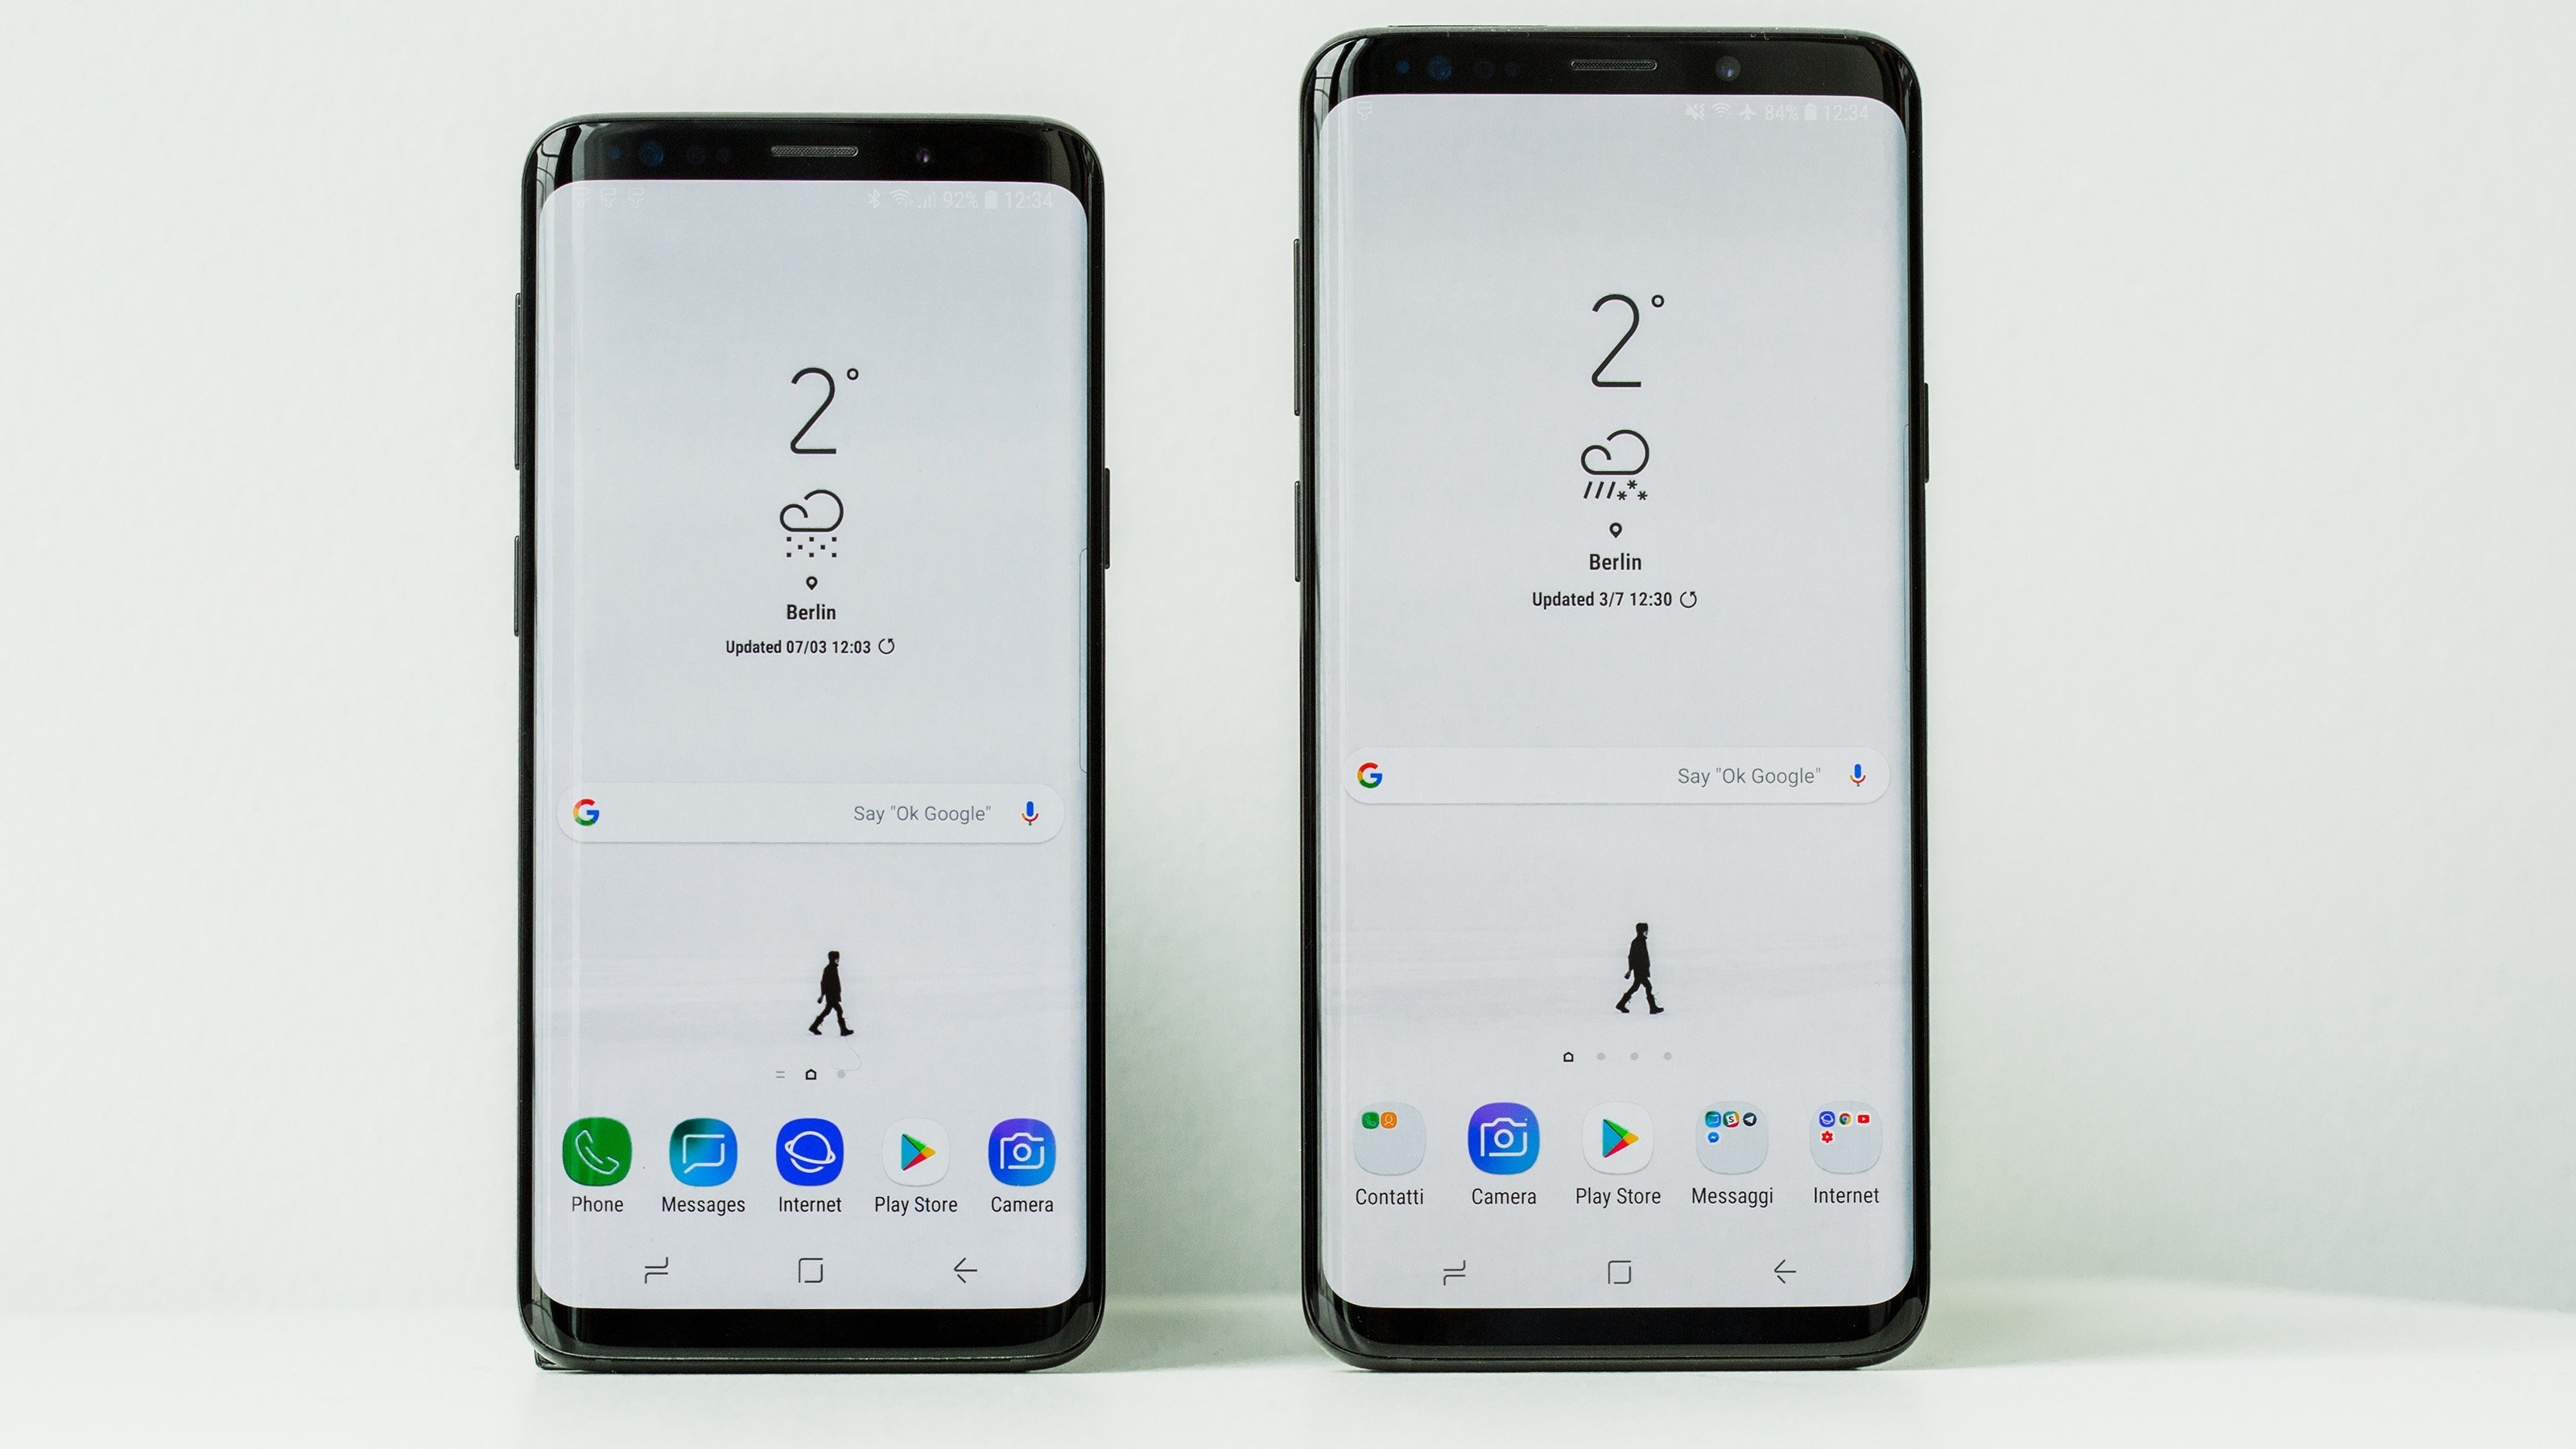 Experiencing call problems on the Galaxy S9/S9+? Here's how to fix